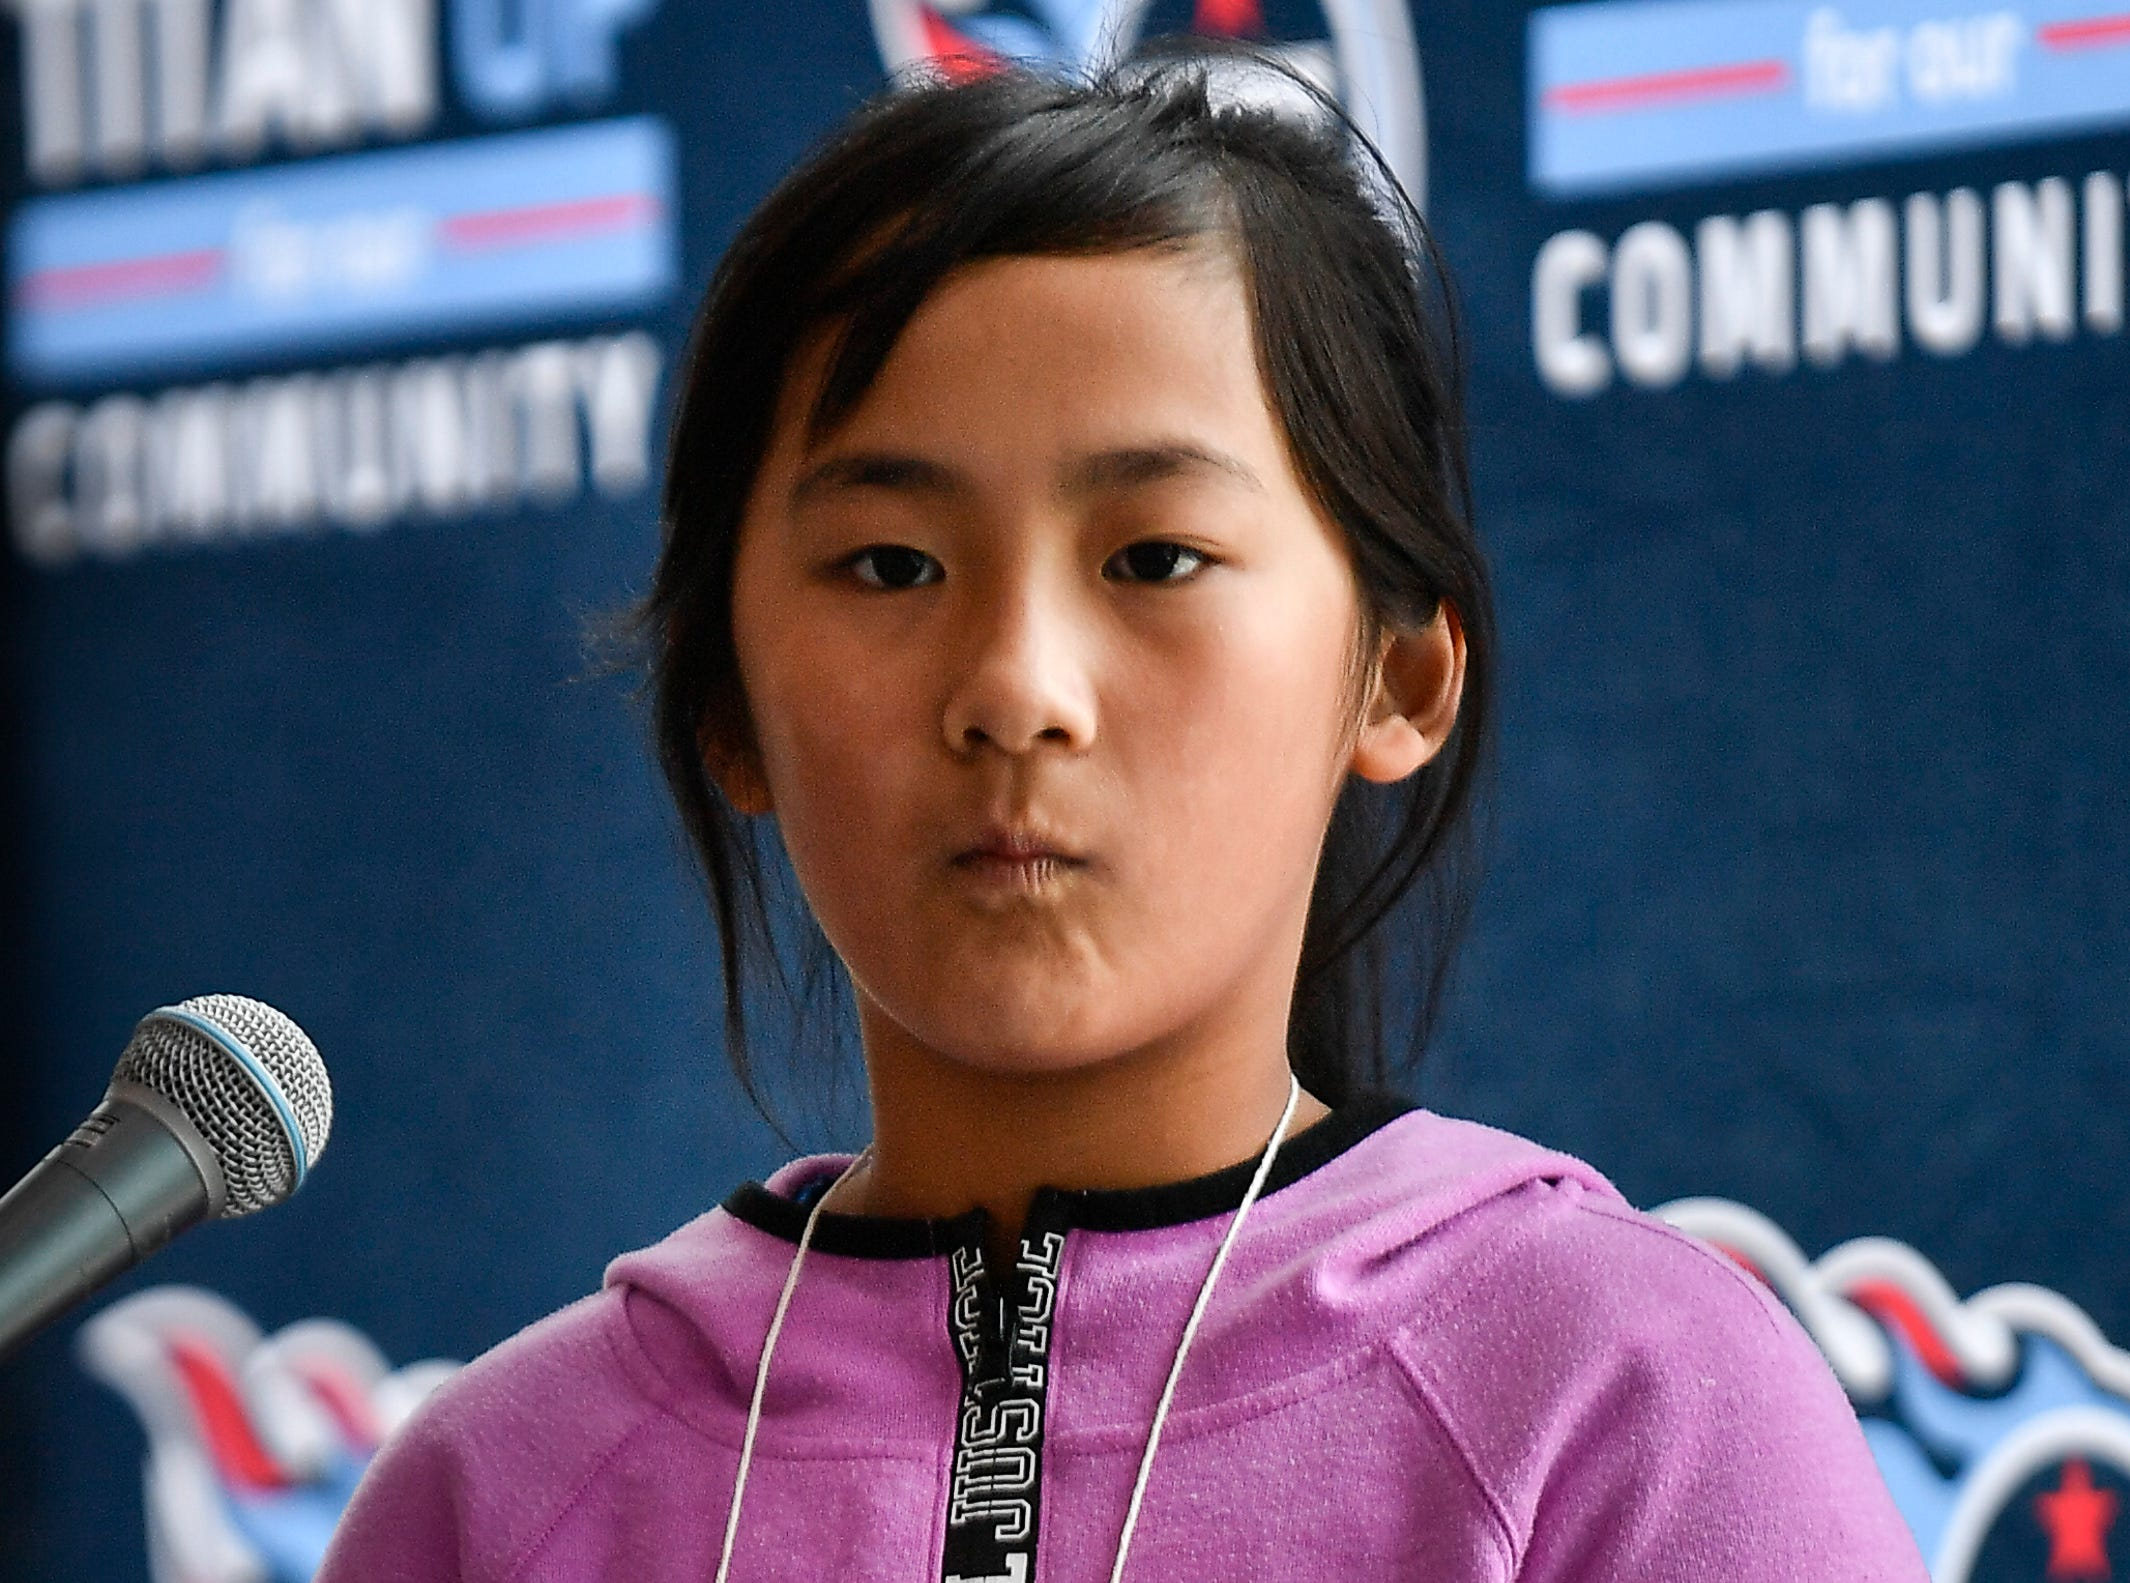 Natalie Chou competes in the Tennessee Titans Regional Spelling Bee at Nissan Stadium Saturday, Feb. 16, 2019 in Nashville, Tenn.